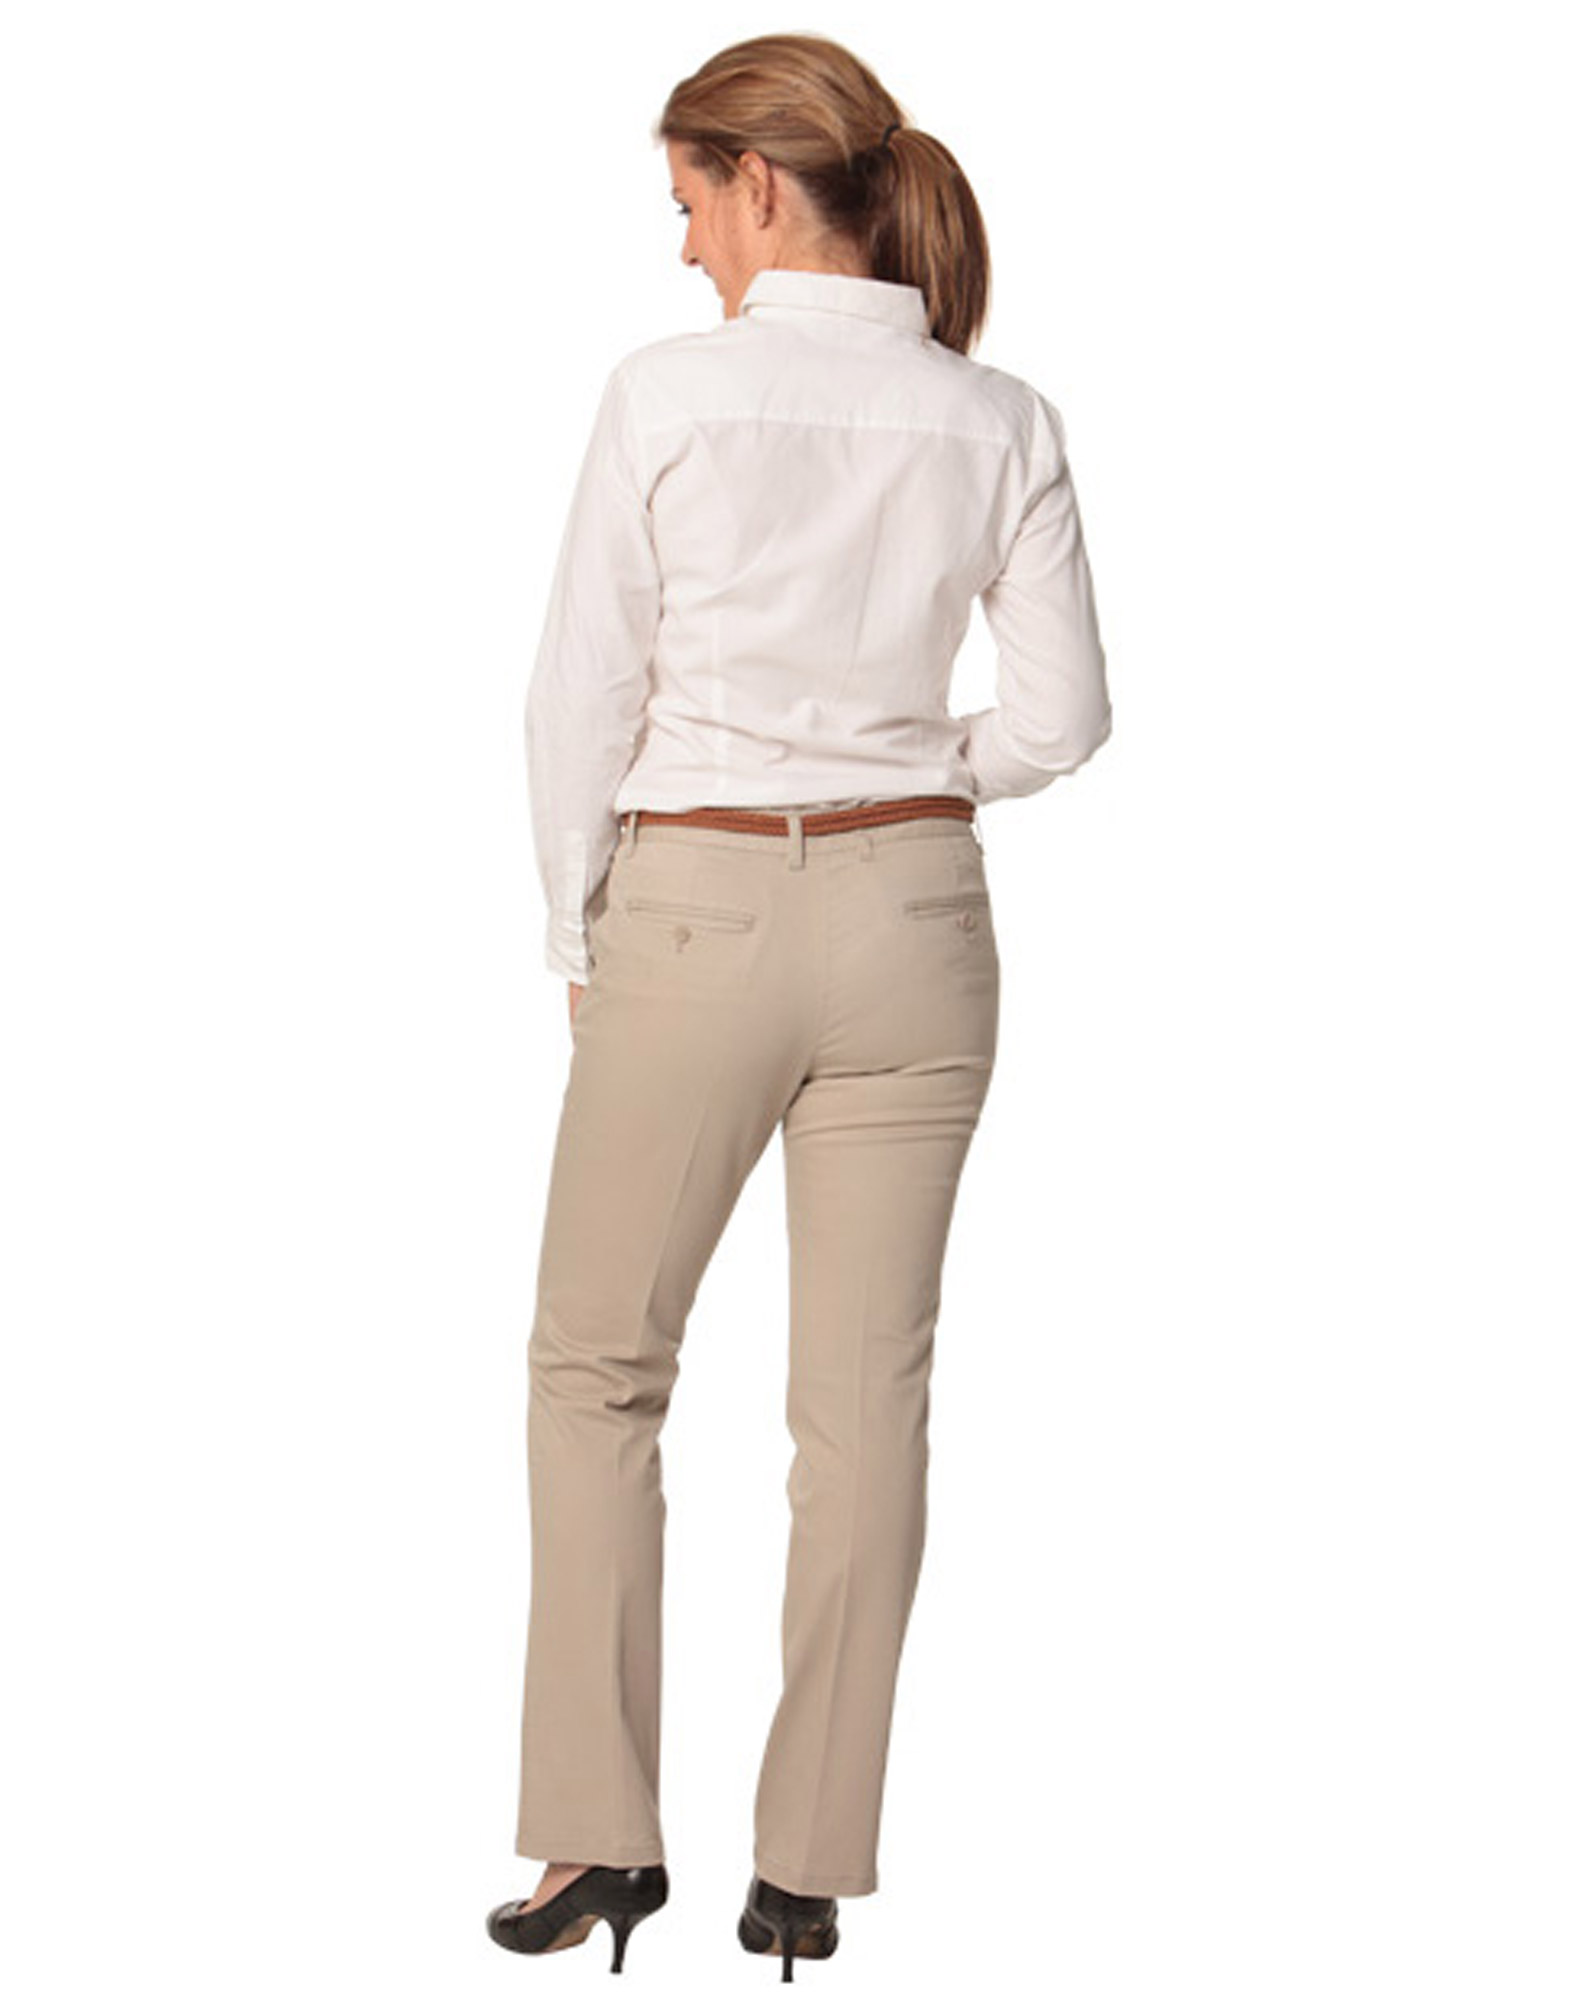 Tall Women's Pants - Walk tall in comfort and style with our fab range of pants for tall truedfil3gz.gq collection of pants has been designed with tall proportions in mind, with longer leg lengths (up to 38